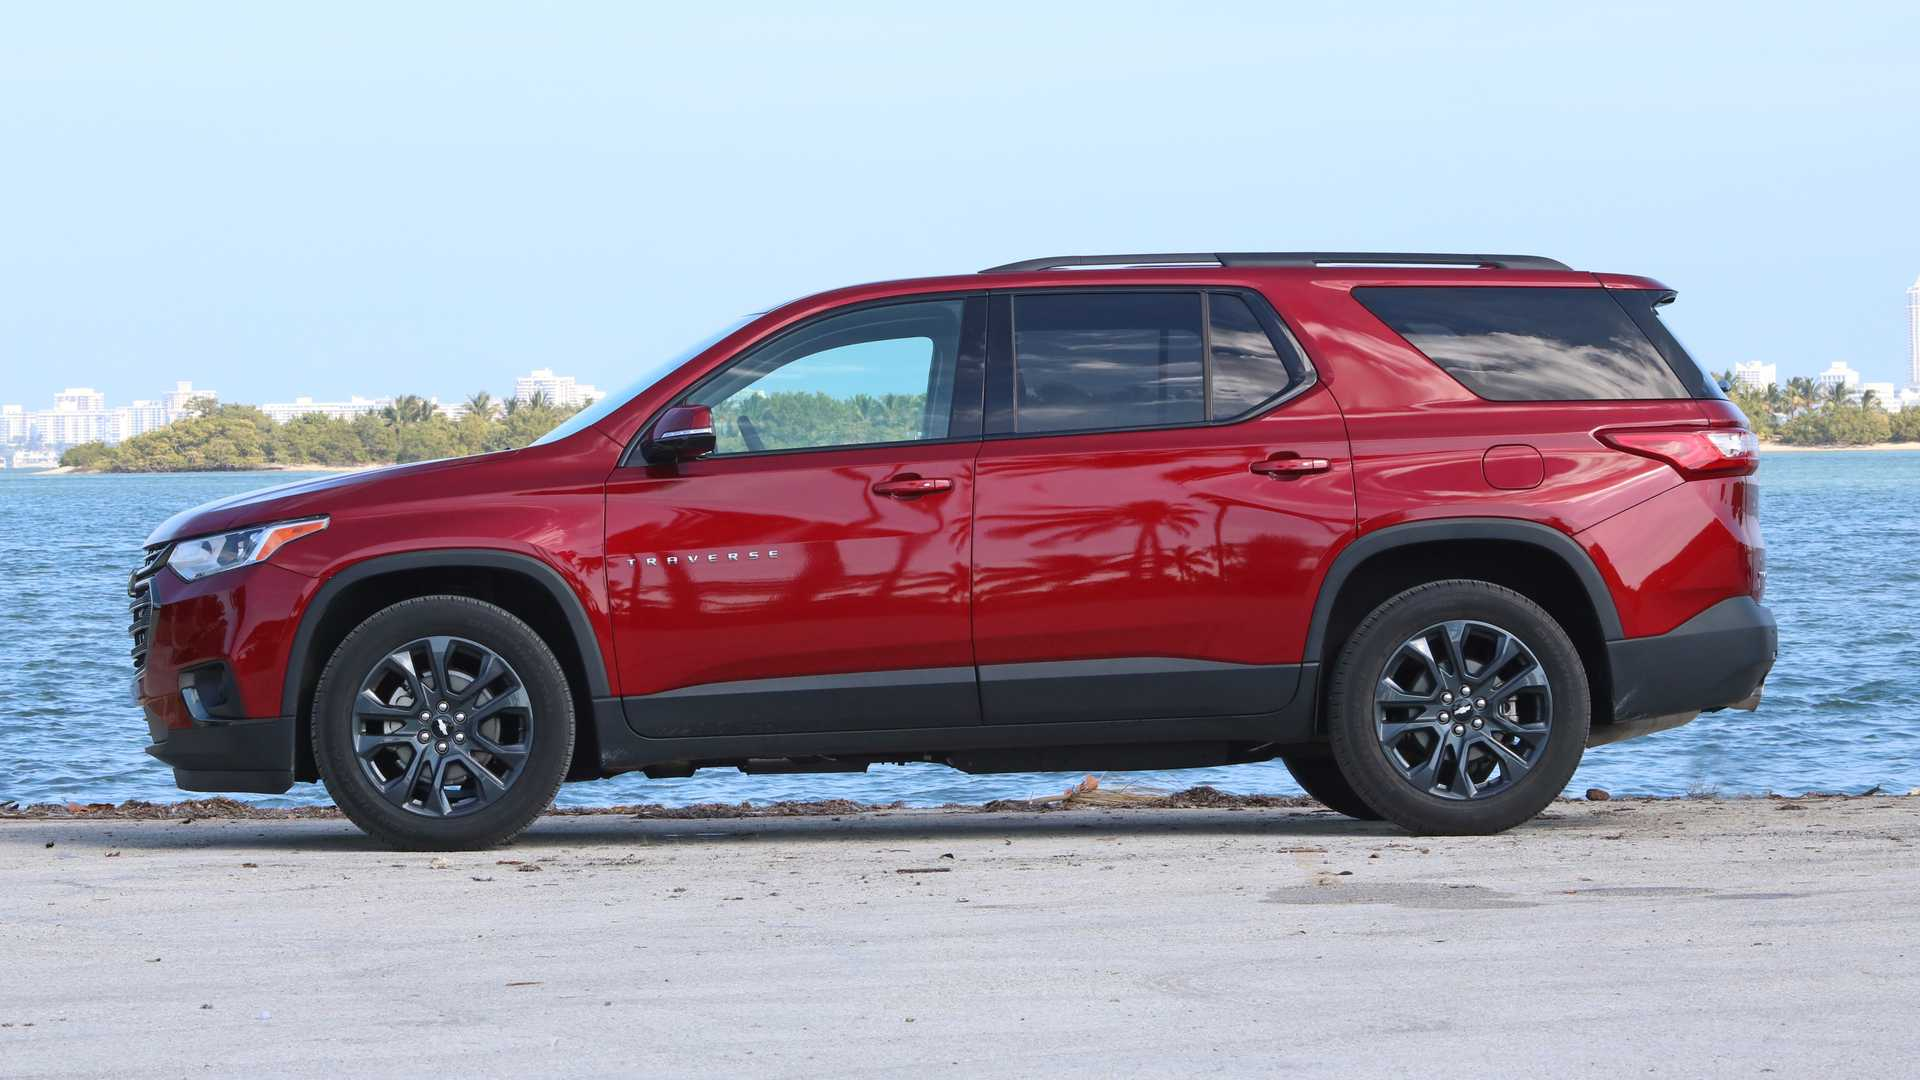 2019 Chevrolet Traverse Vs 2019 Honda Pilot Comparison 3 Row Duel